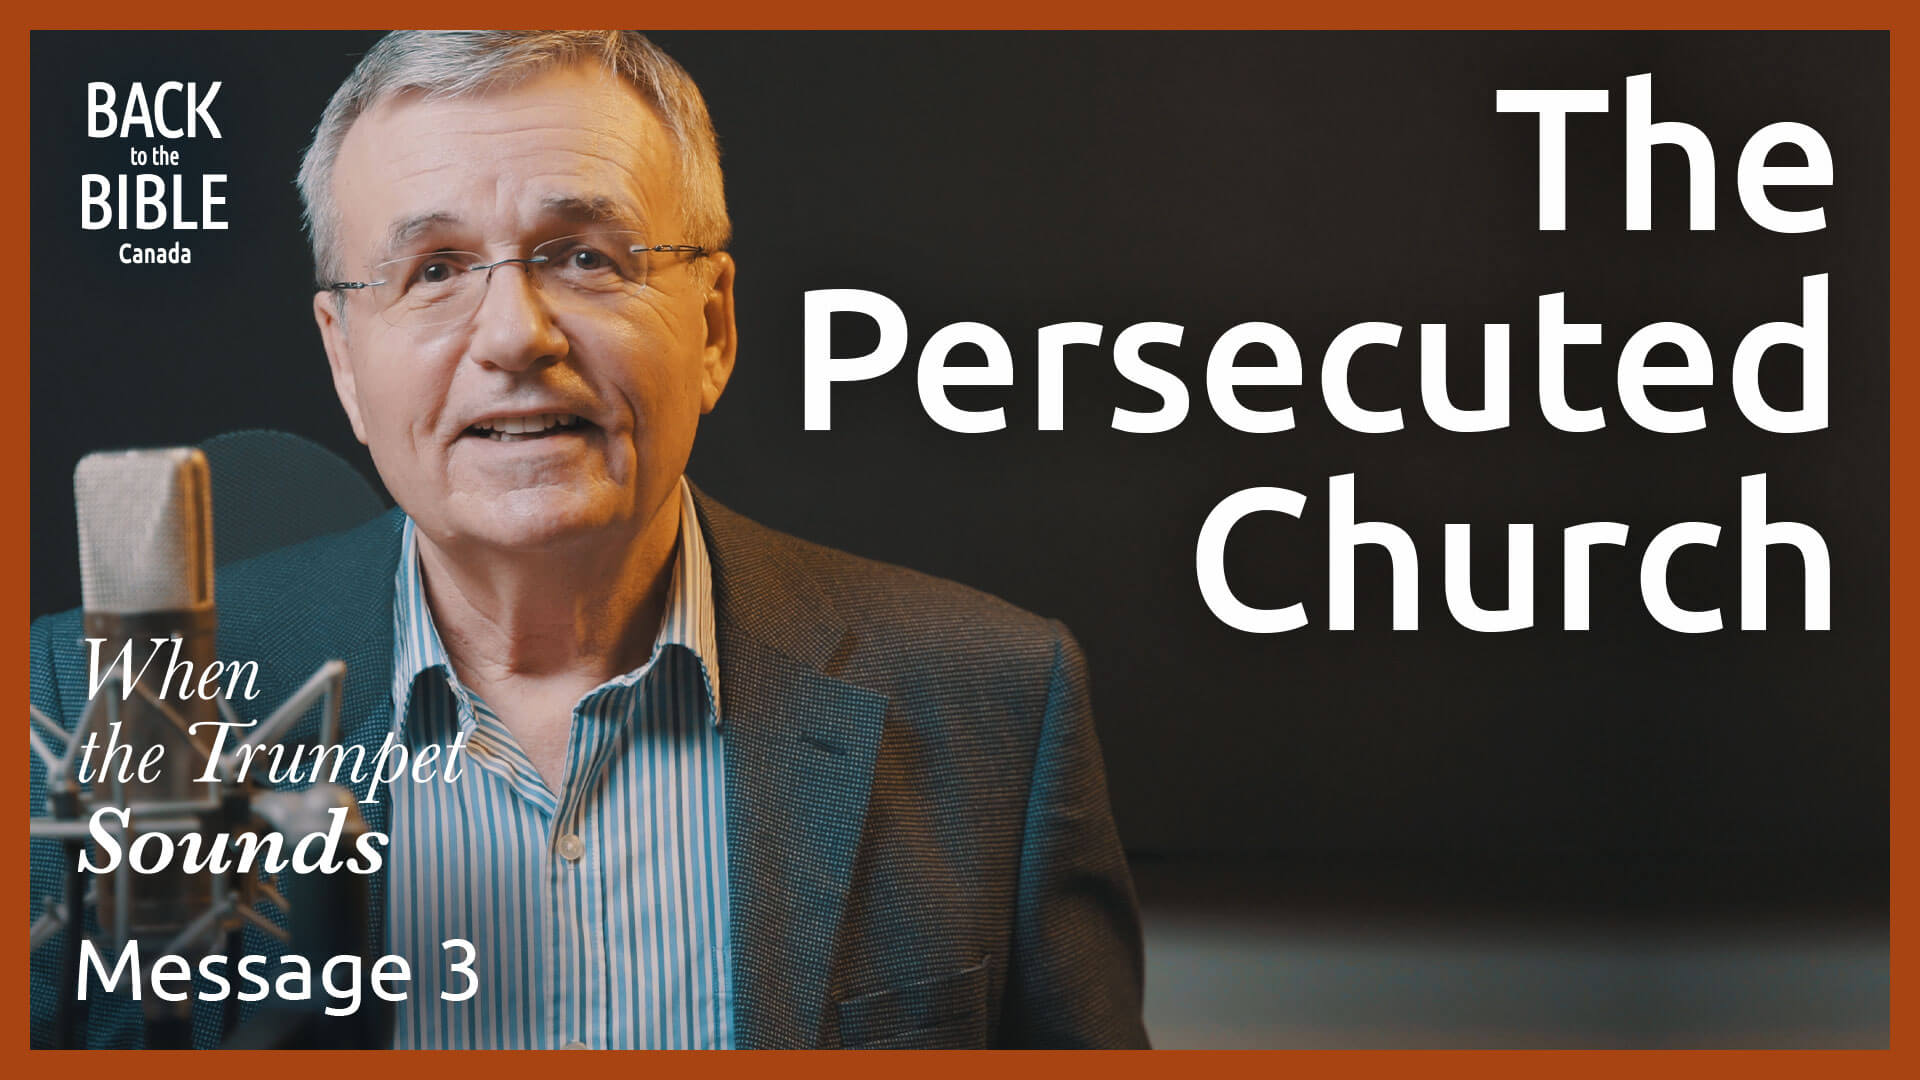 The Persecuted Church | Back to the Bible Canada with Dr. John Neufeld